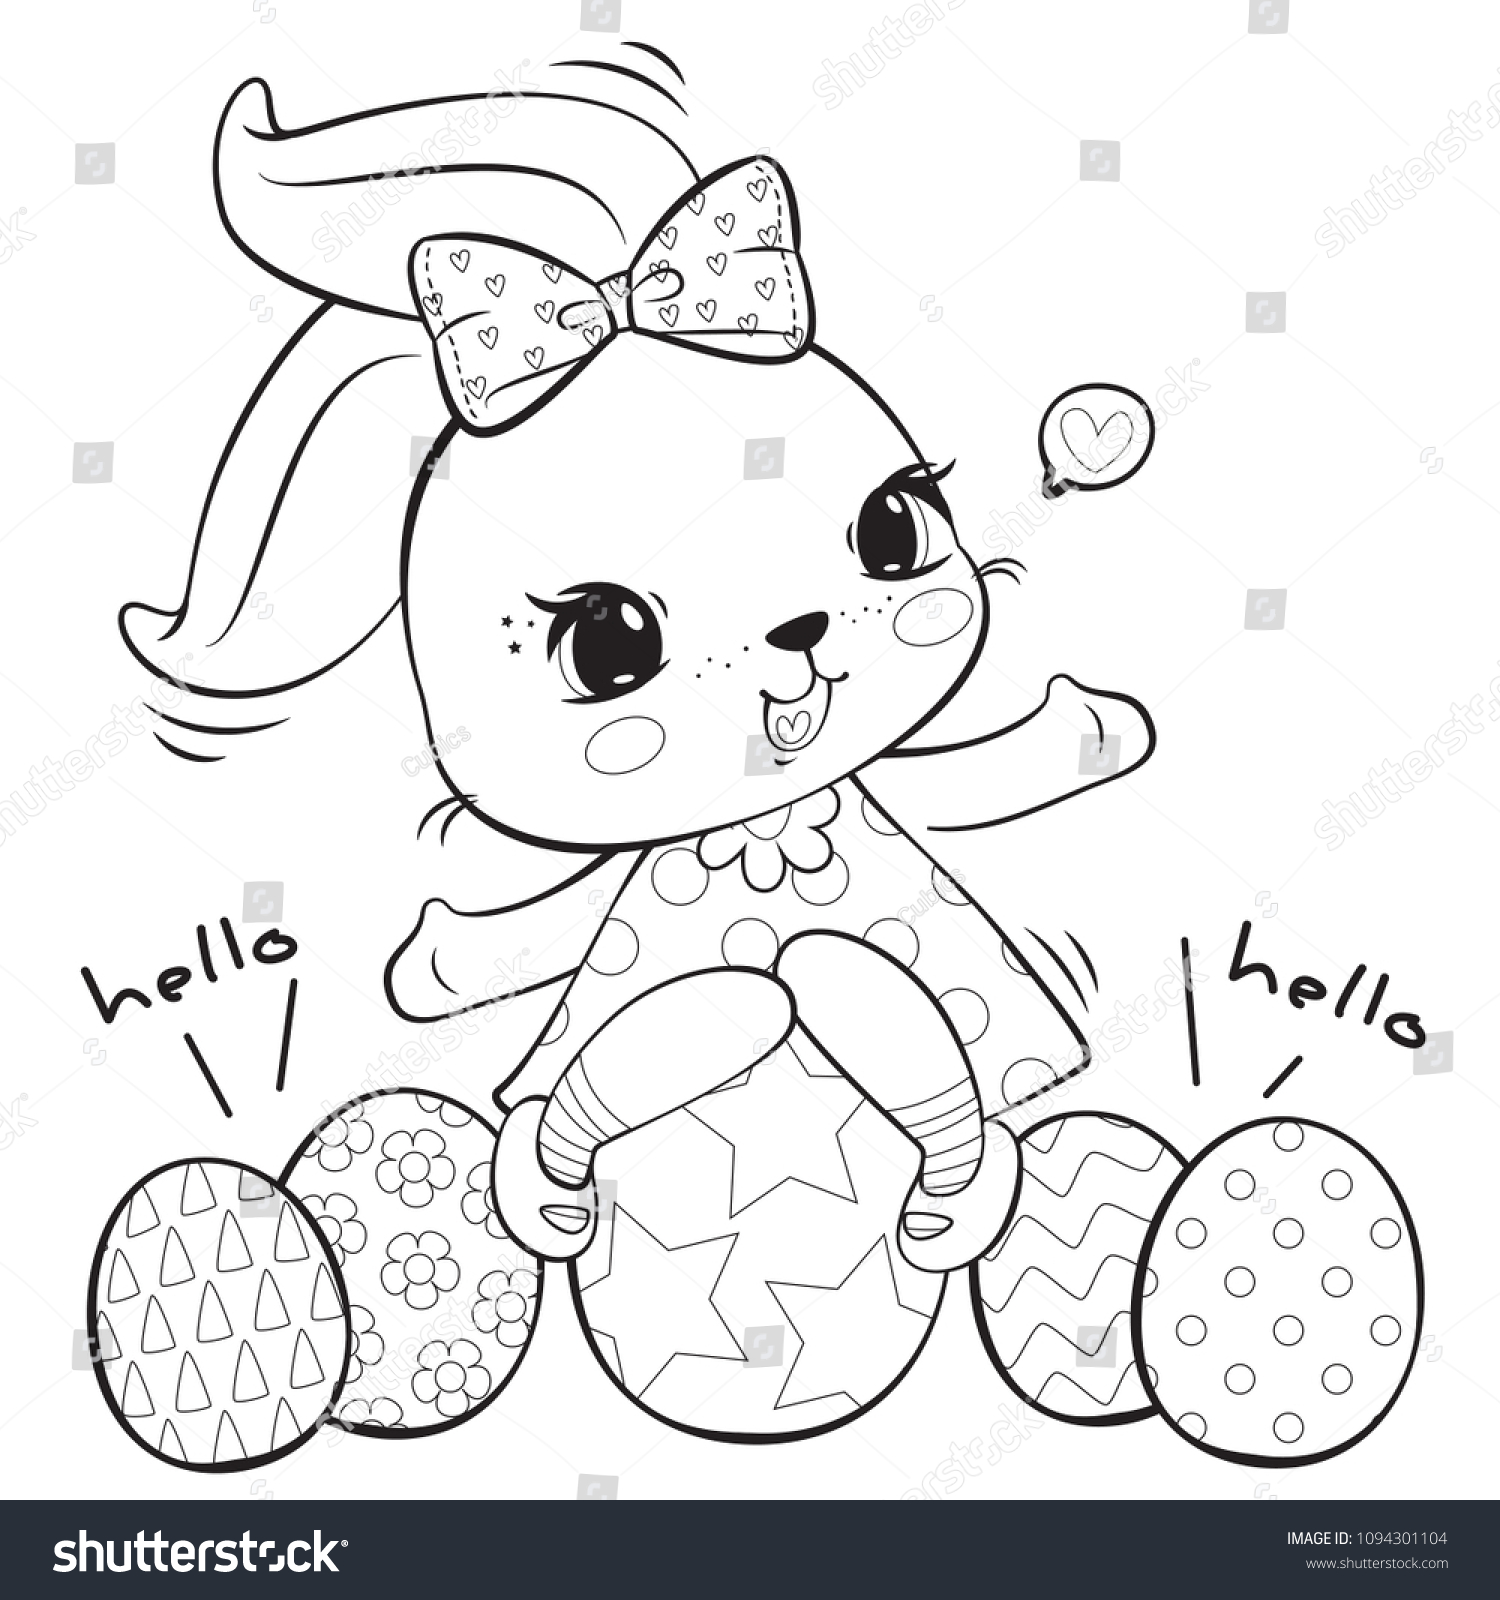 Printable Rabbit Coloring Pages For Kids | 1600x1500